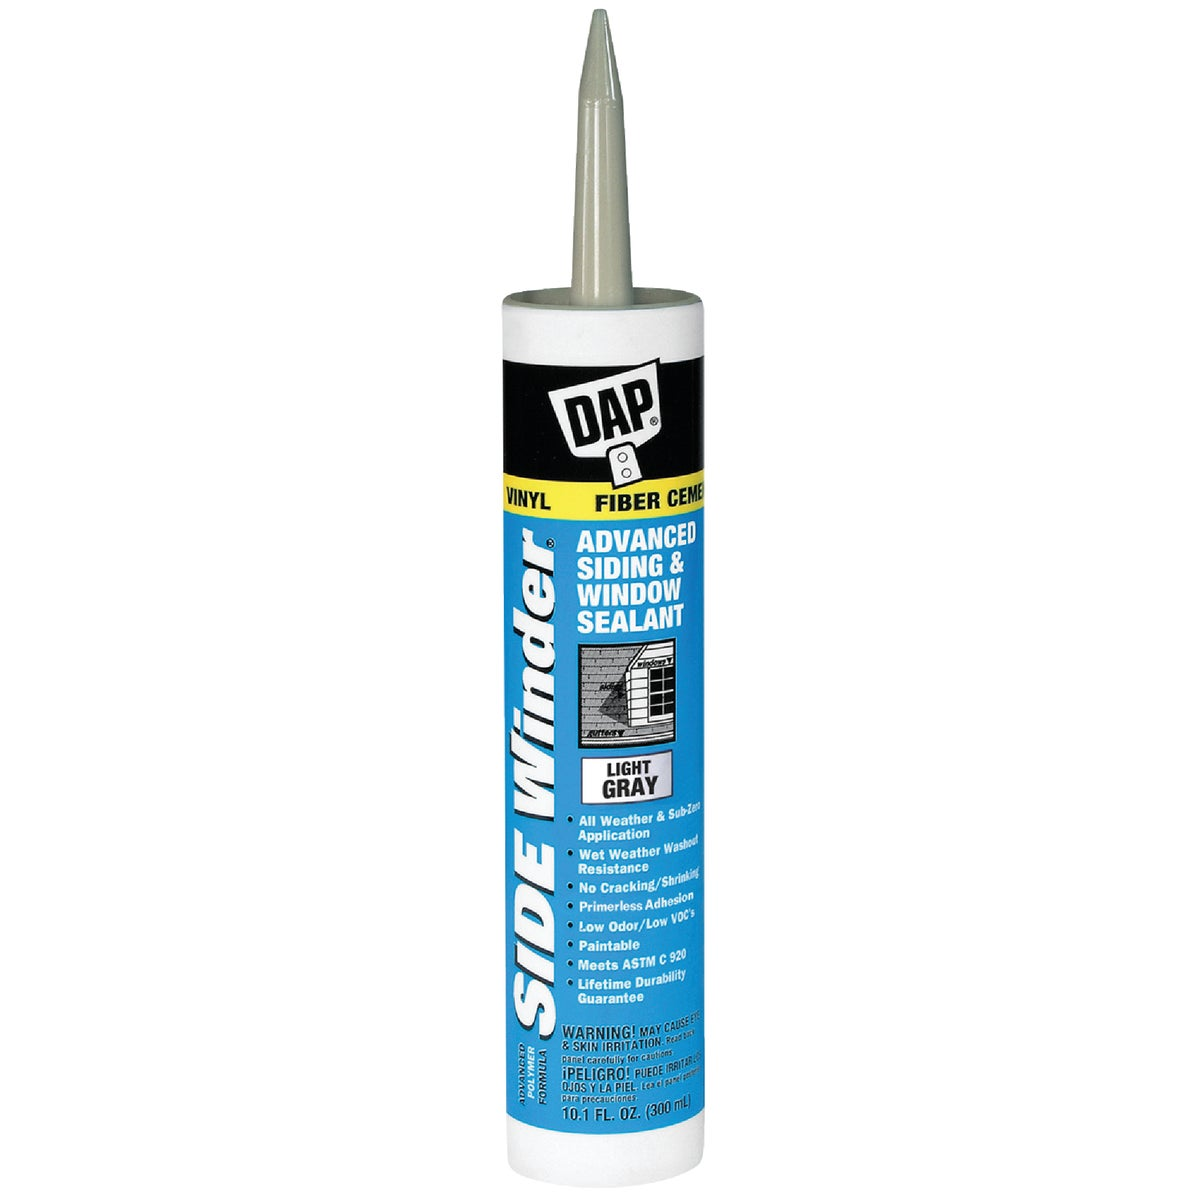 LT GRY SIDEWINDR SEALANT - 00807 by Dap Inc